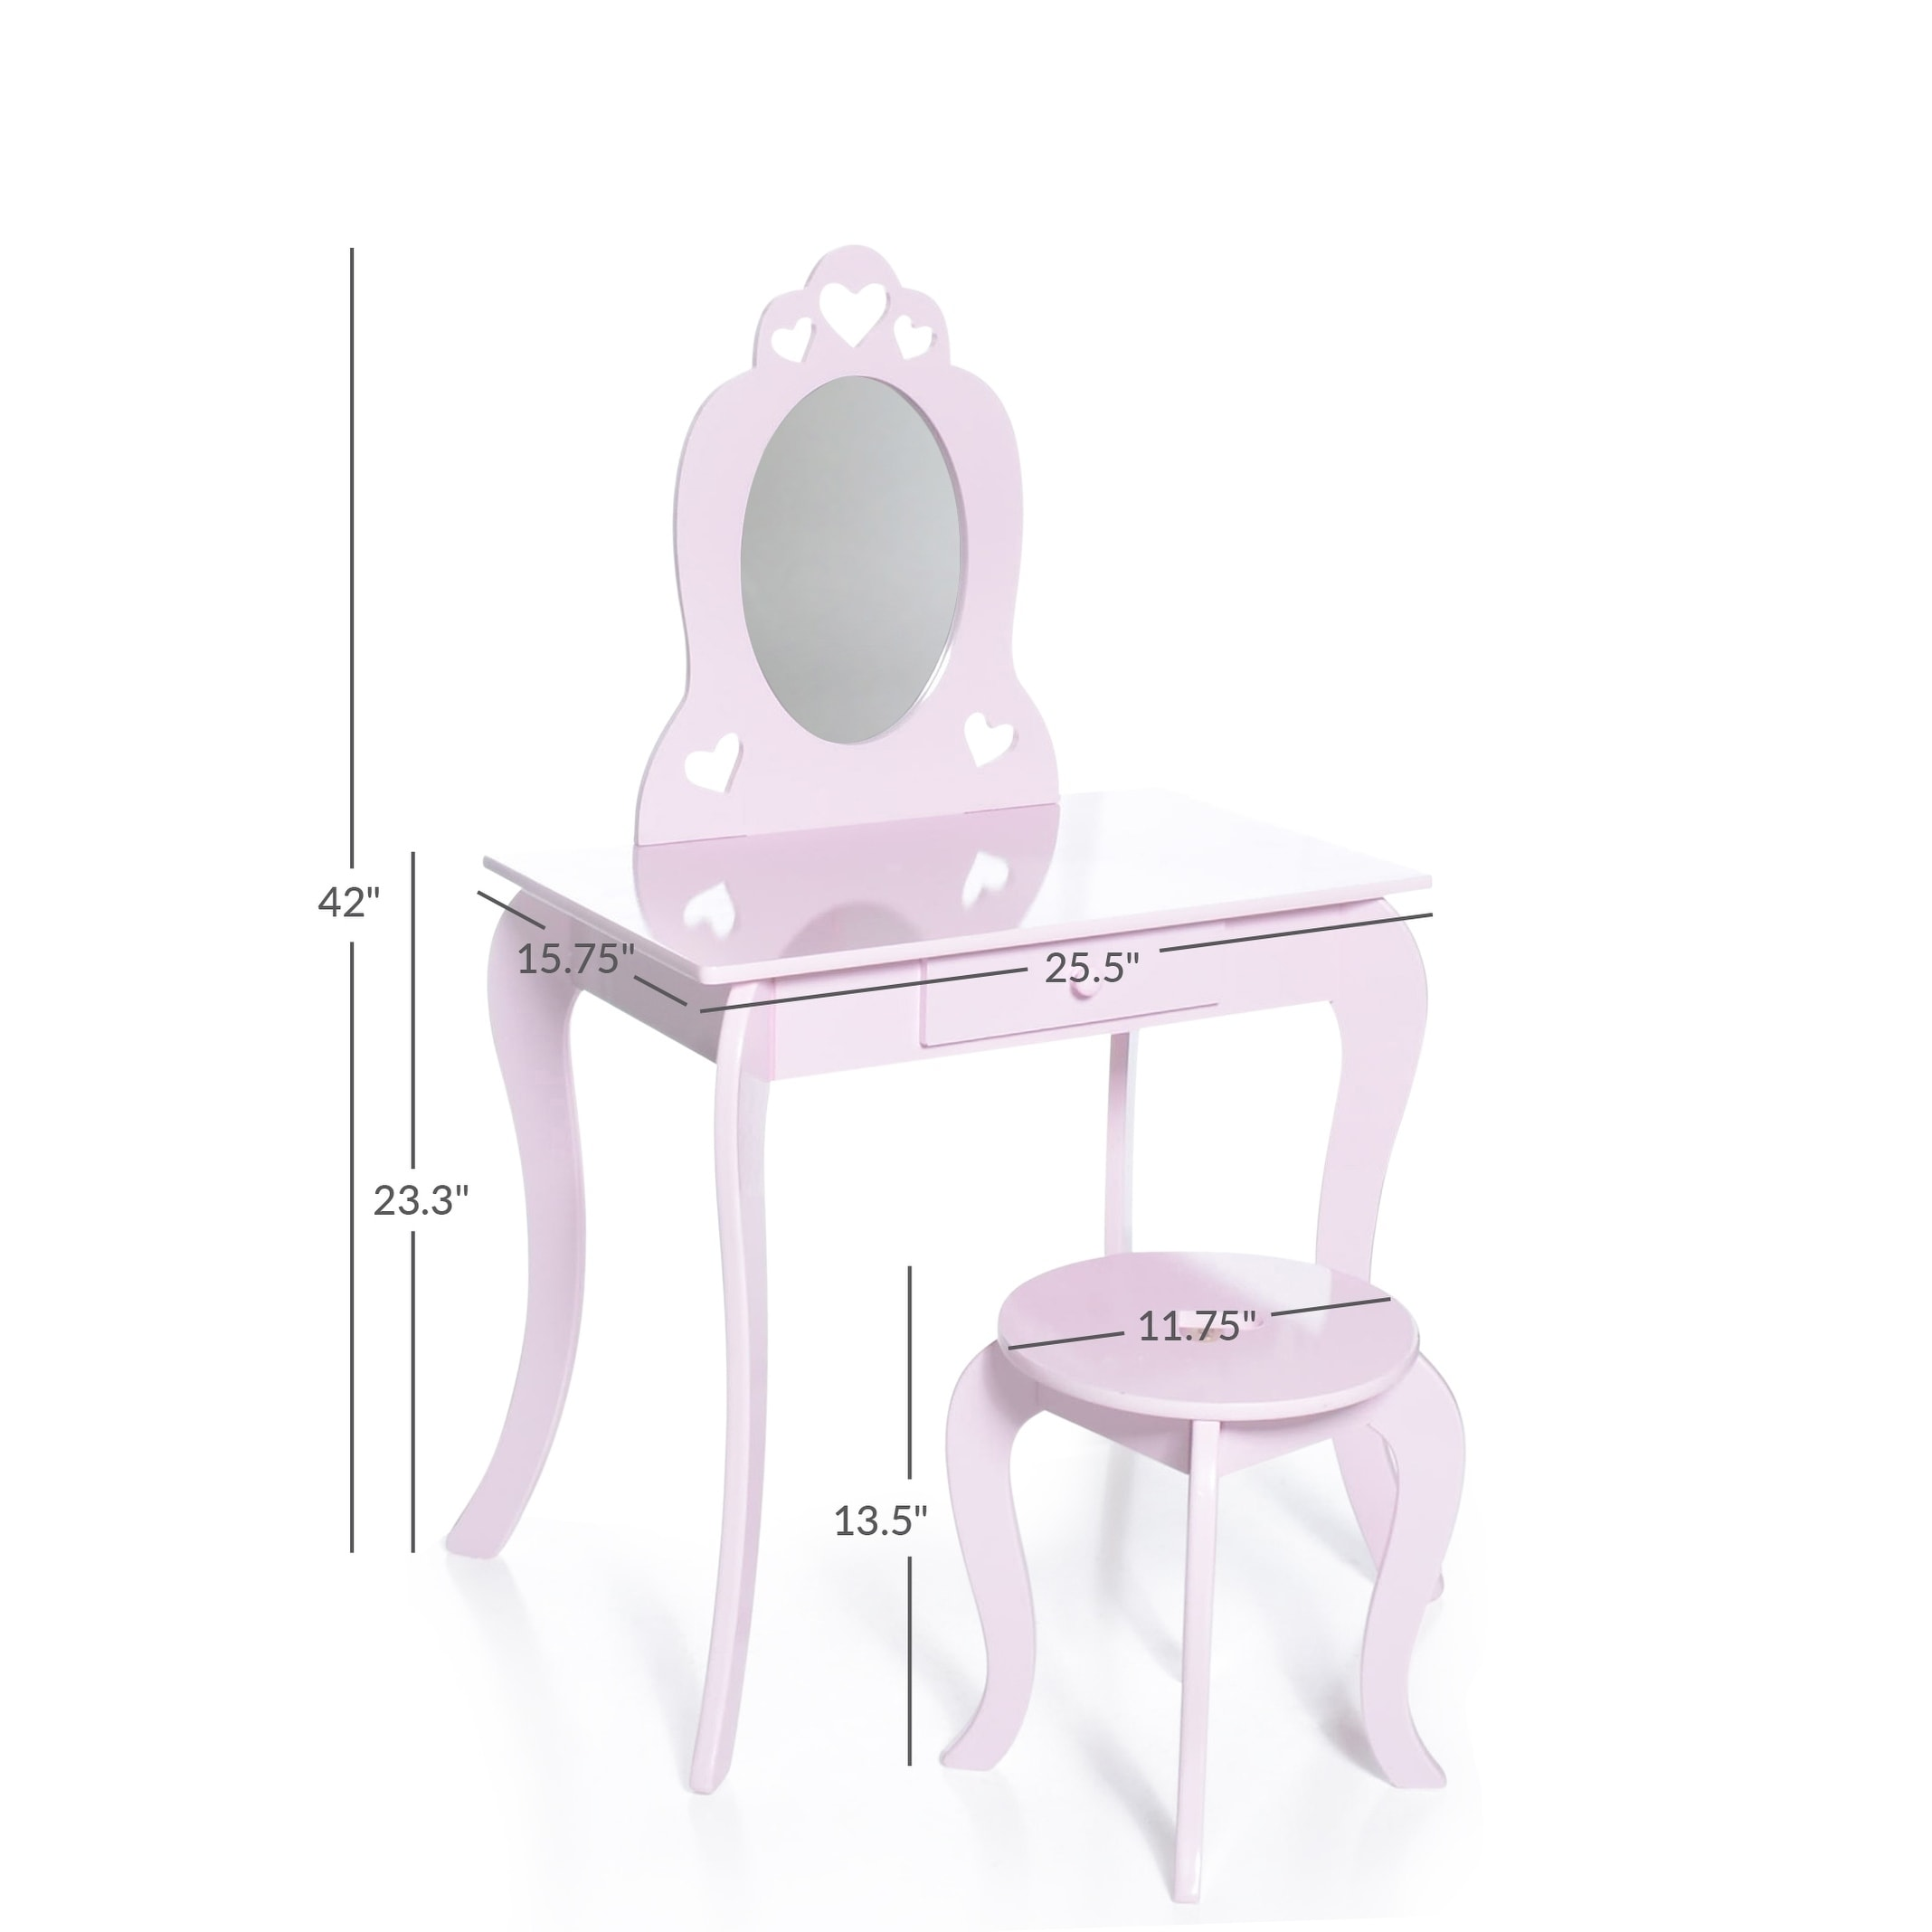 milliard kids vanity makeup table and chair set pretend beauty make up stool play set for children pink with mirror